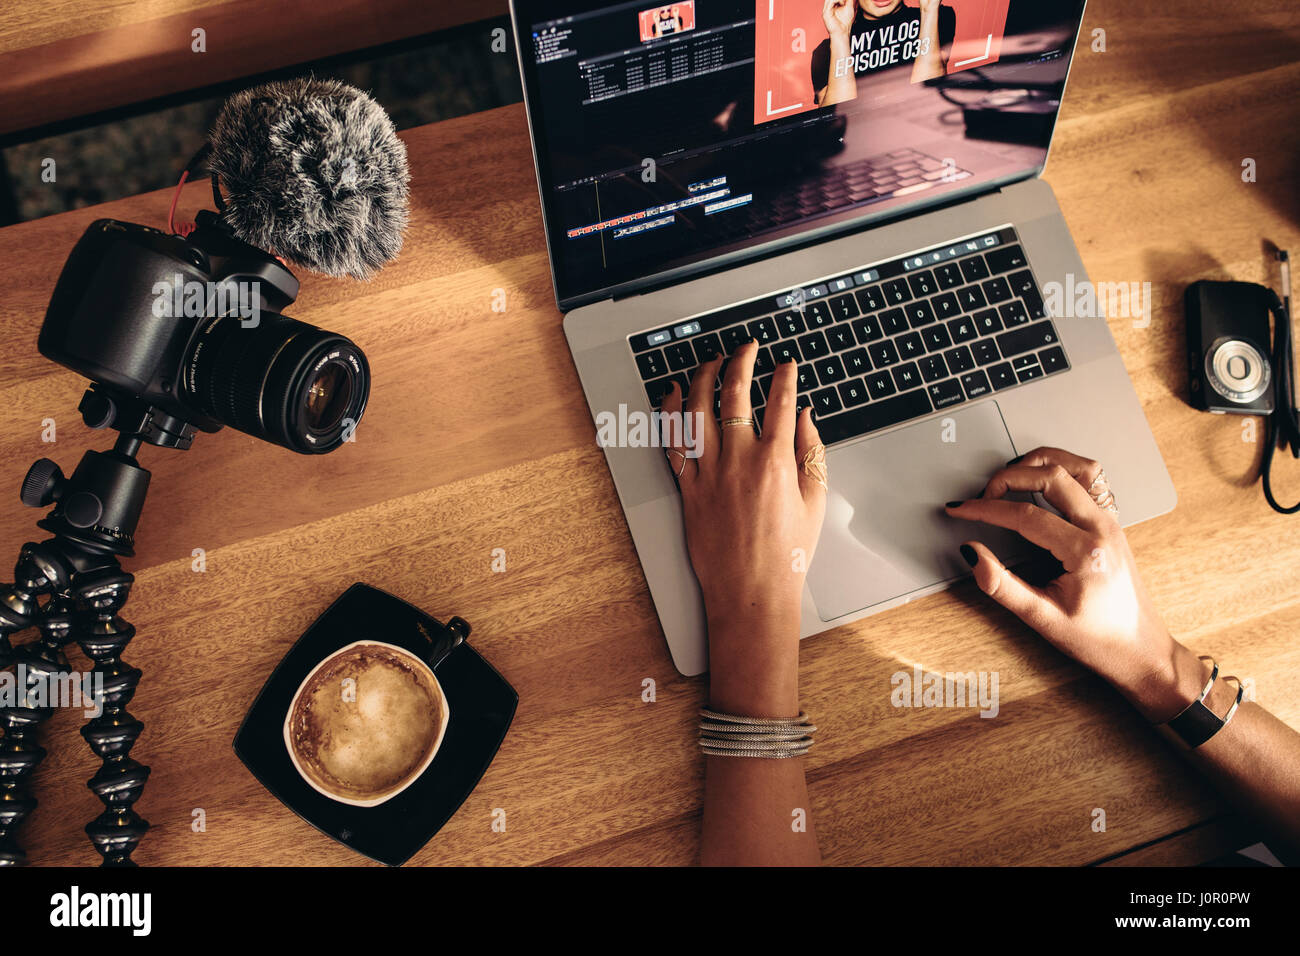 Top view of female vlogger editing video on laptop. Young woman working on computer with coffee and cameras on table. - Stock Image